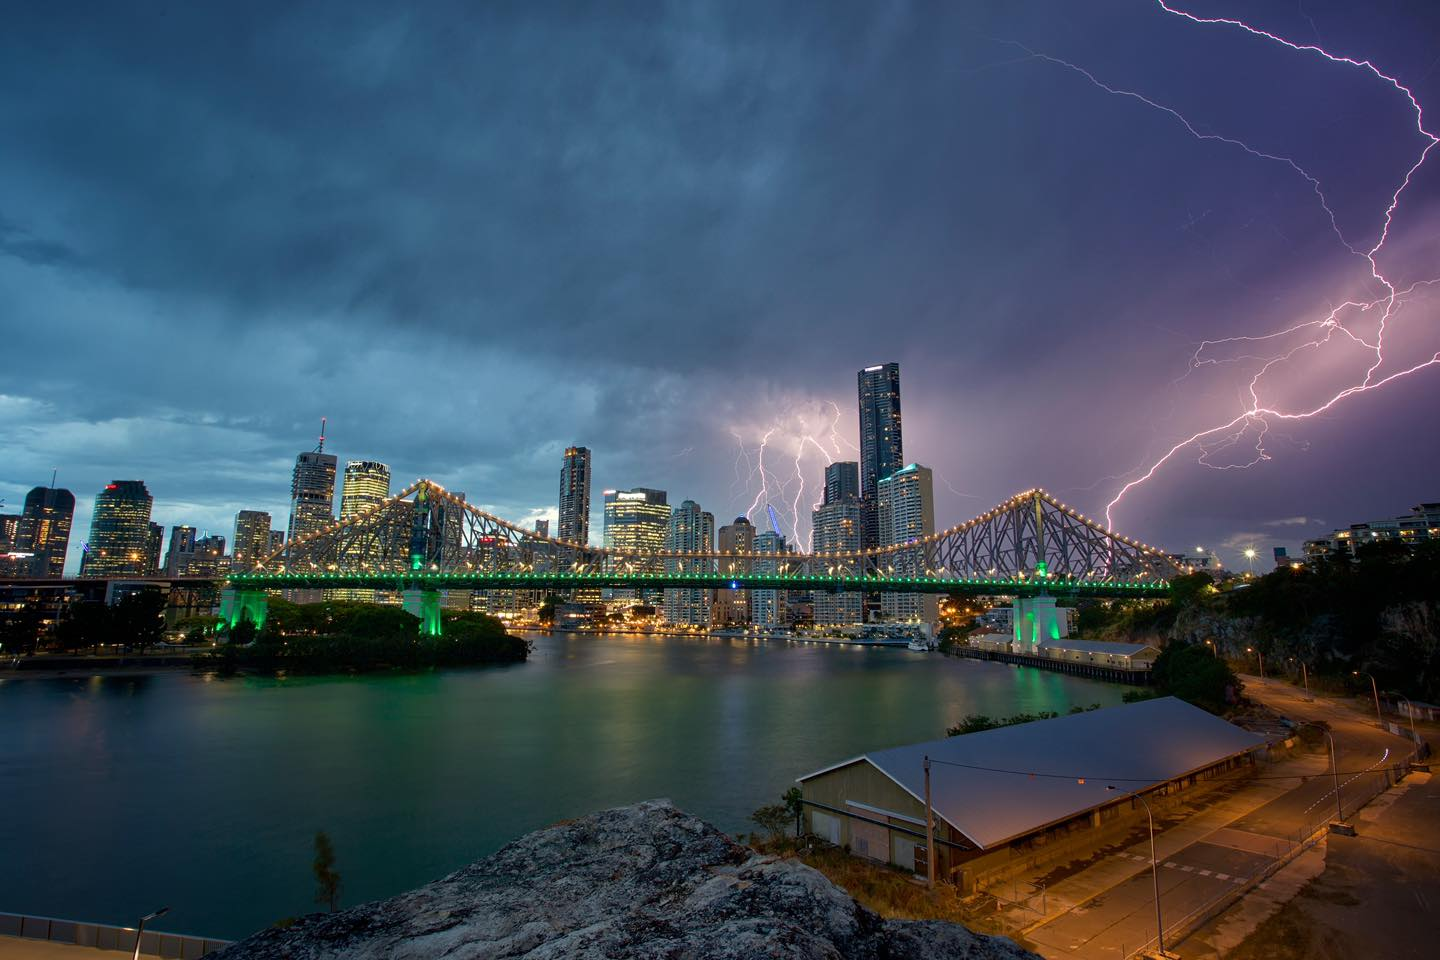 Prepare your home, family and business for storm season